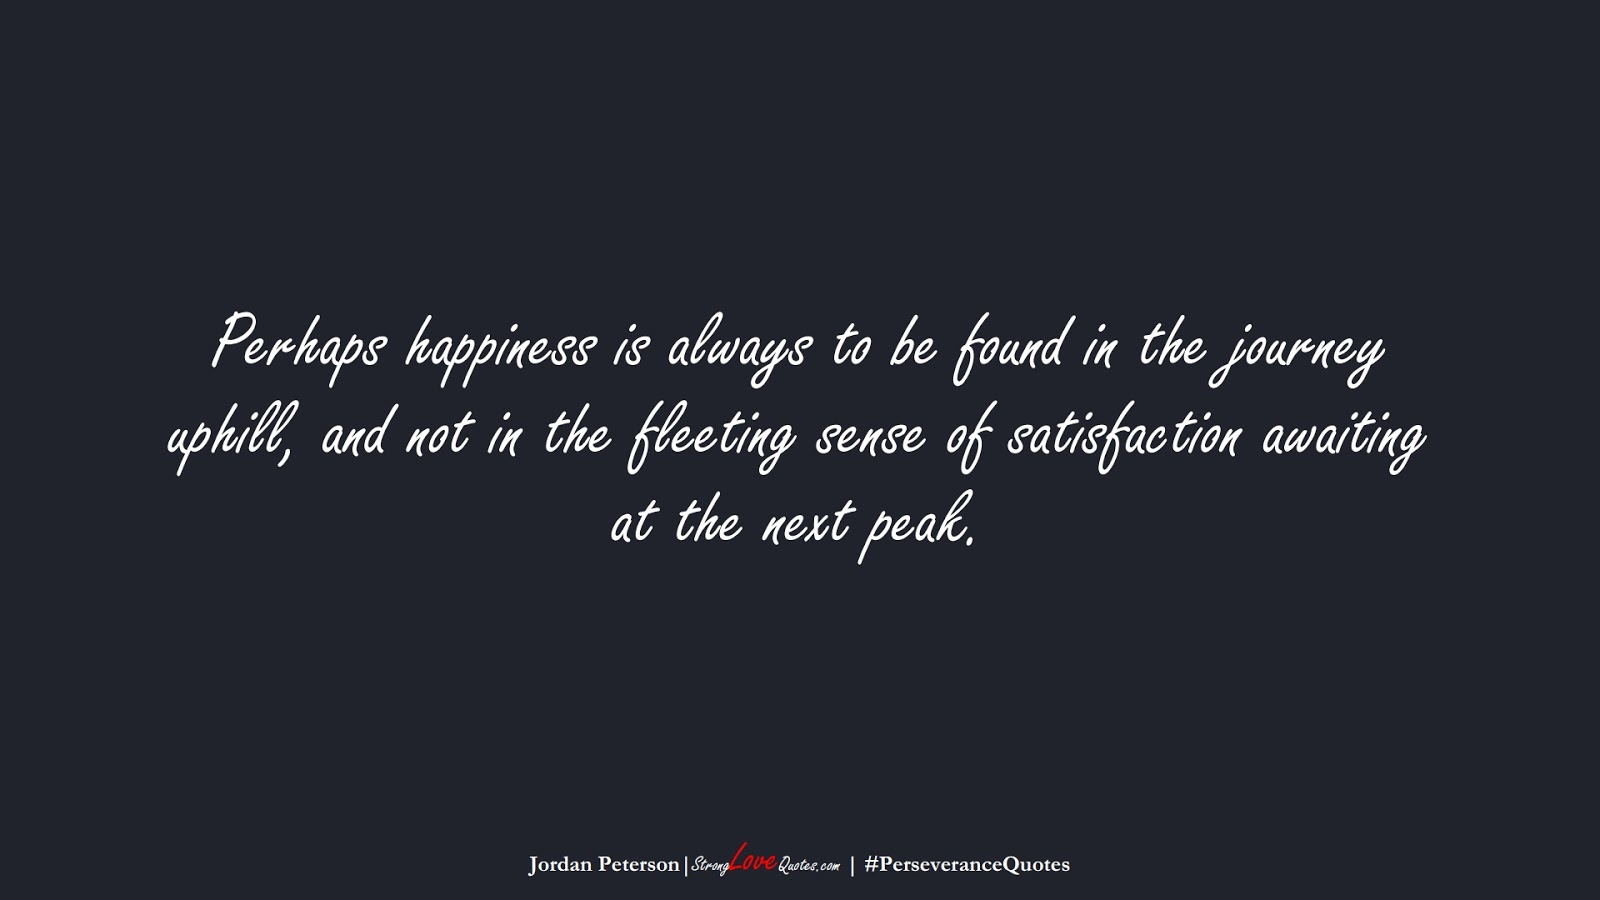 Perhaps happiness is always to be found in the journey uphill, and not in the fleeting sense of satisfaction awaiting at the next peak. (Jordan Peterson);  #PerseveranceQuotes